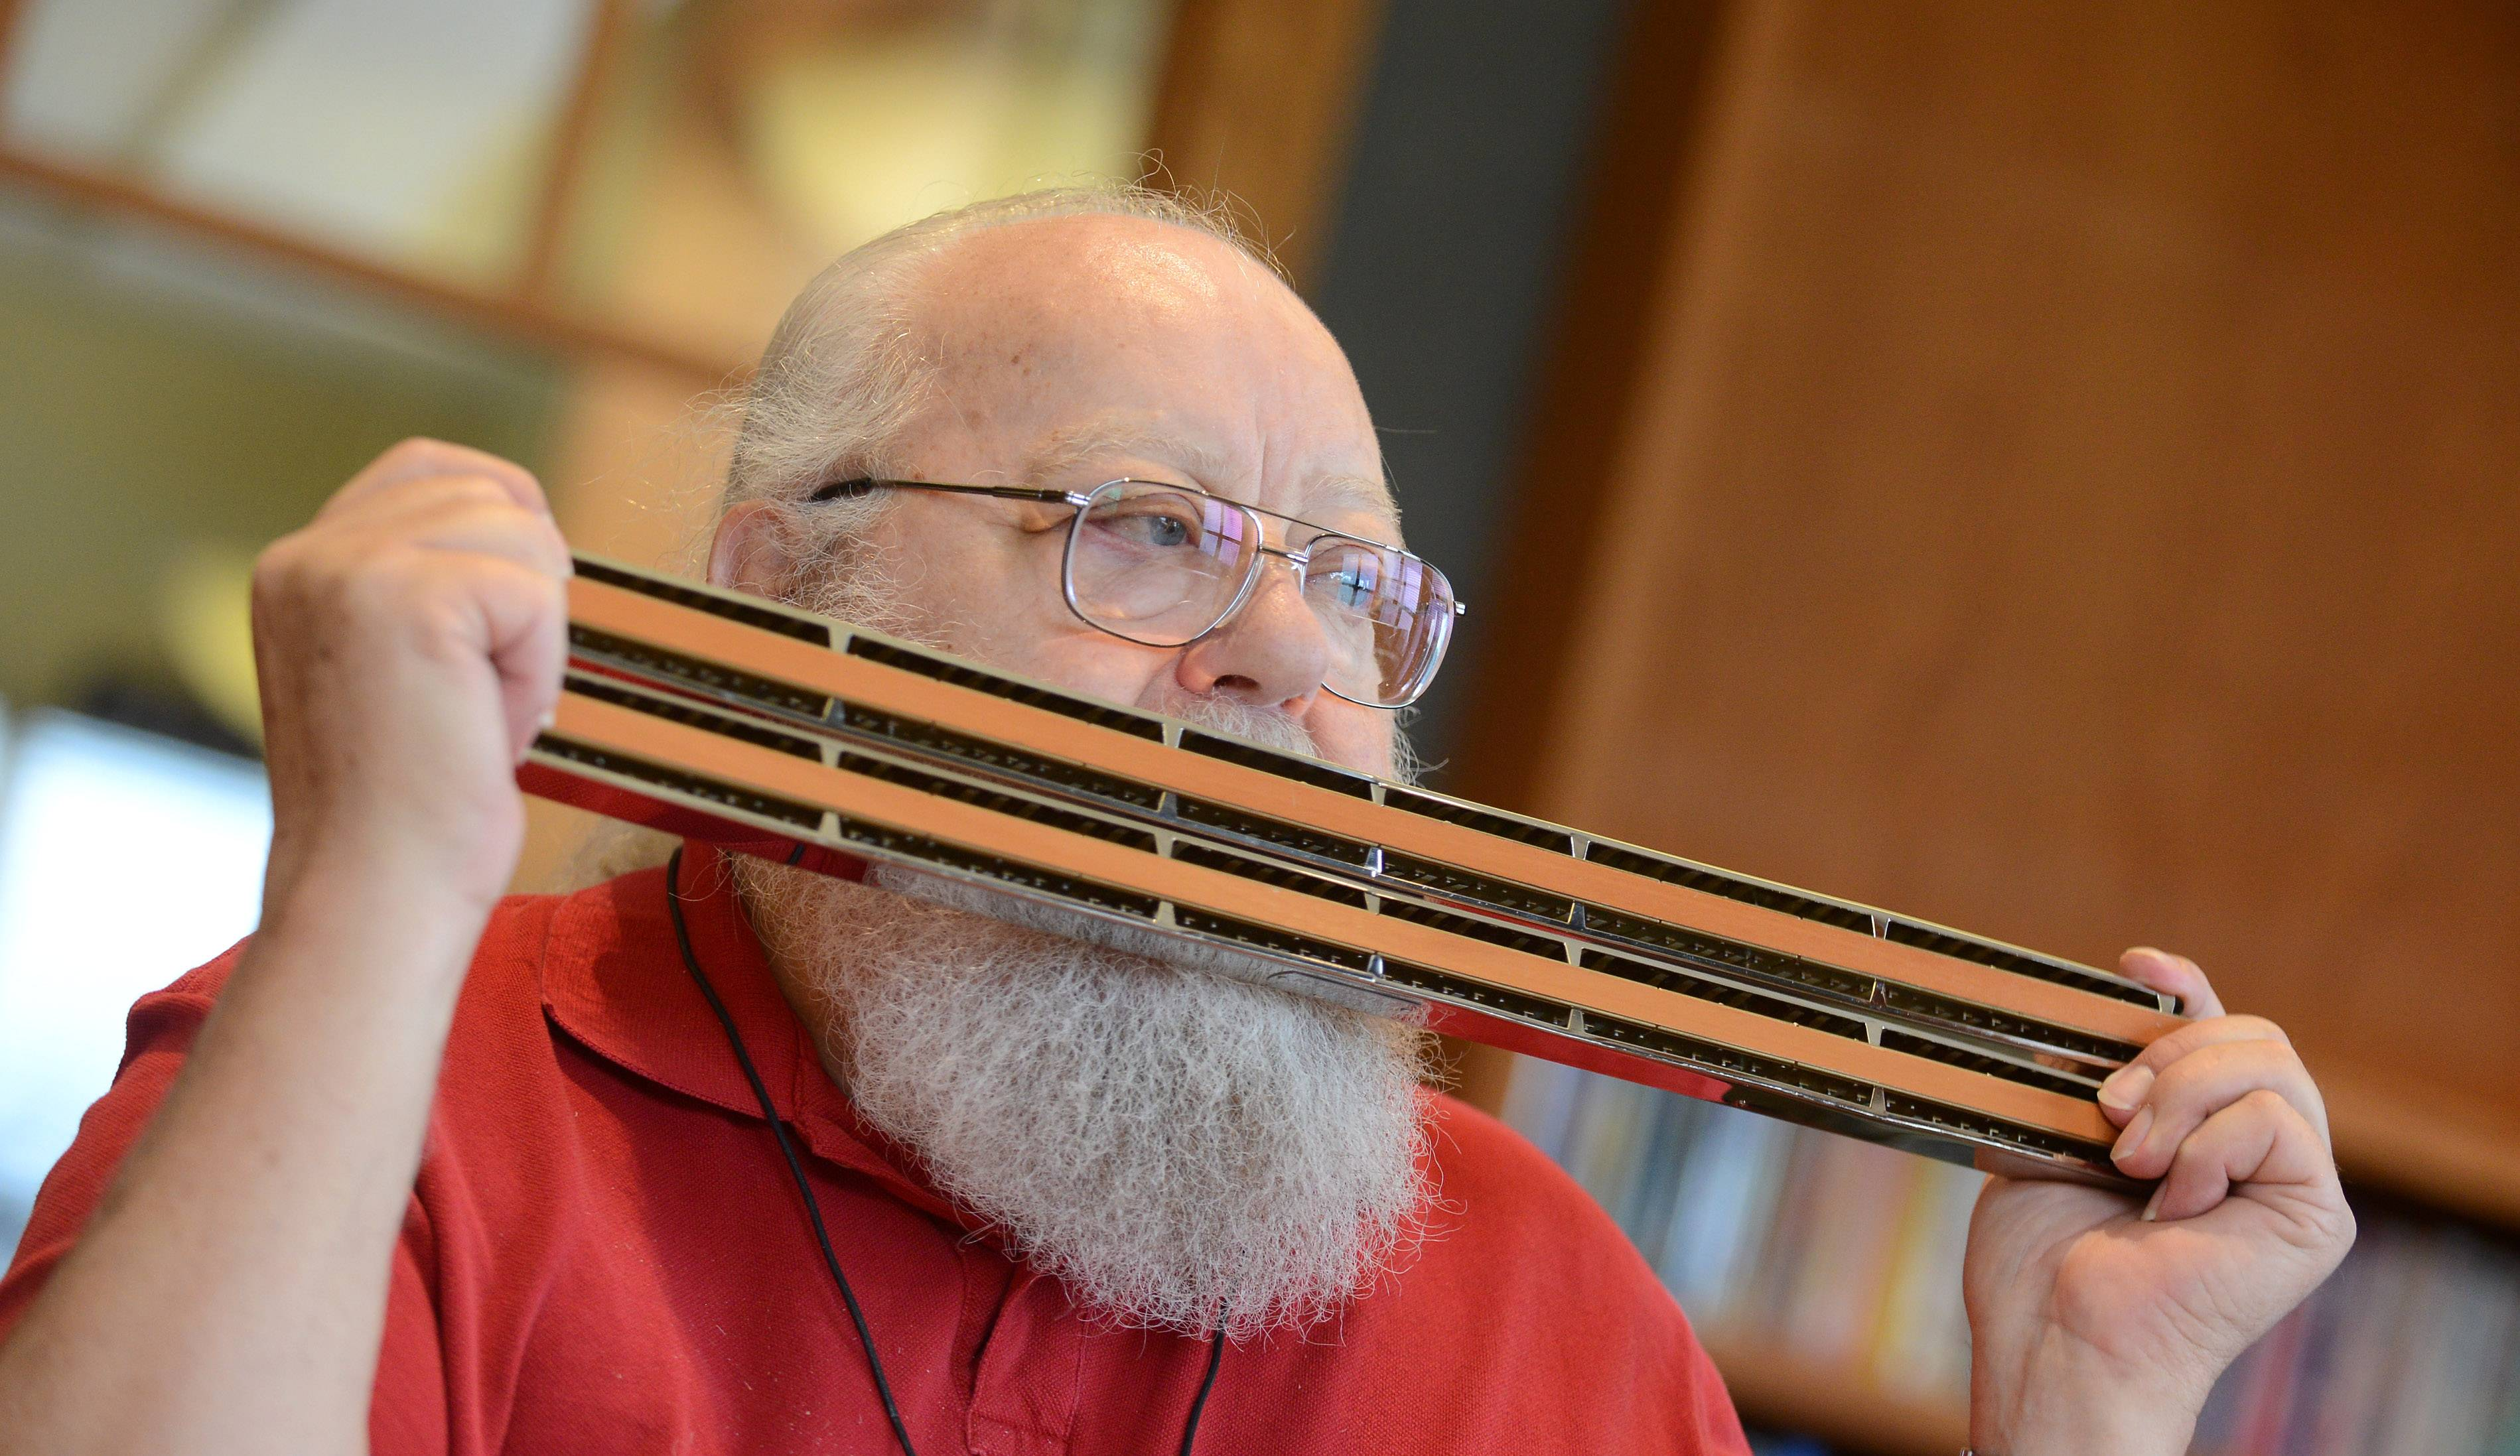 Ray Hagen of Streamwood plays a chord harmonica during Monday's meeting of the Harmelodian Club at Pottawatomie Community Center in St. Charles. The harmonica-playing club is part of the Adult Activity Center run by the park district and has been around about five years.